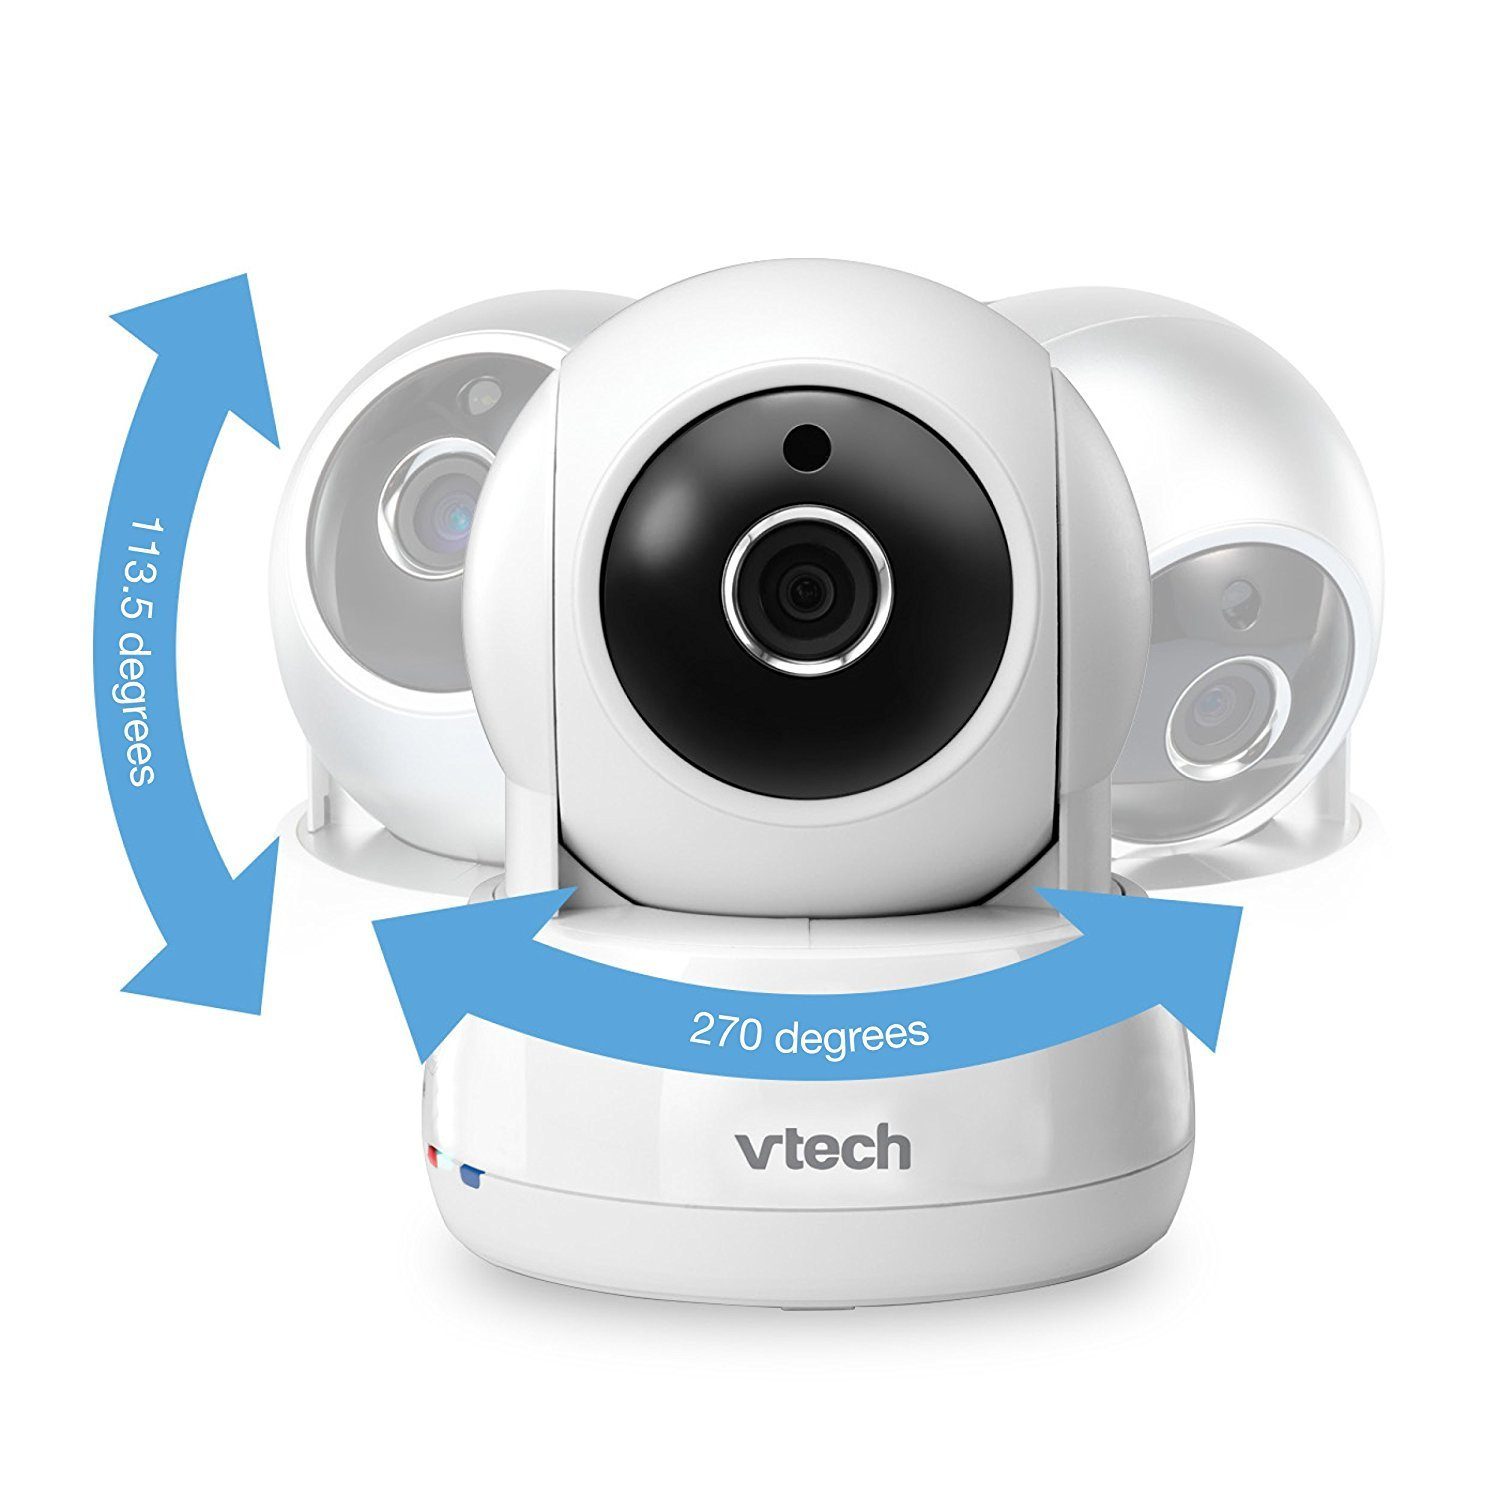 vtech wifi baby monitor review